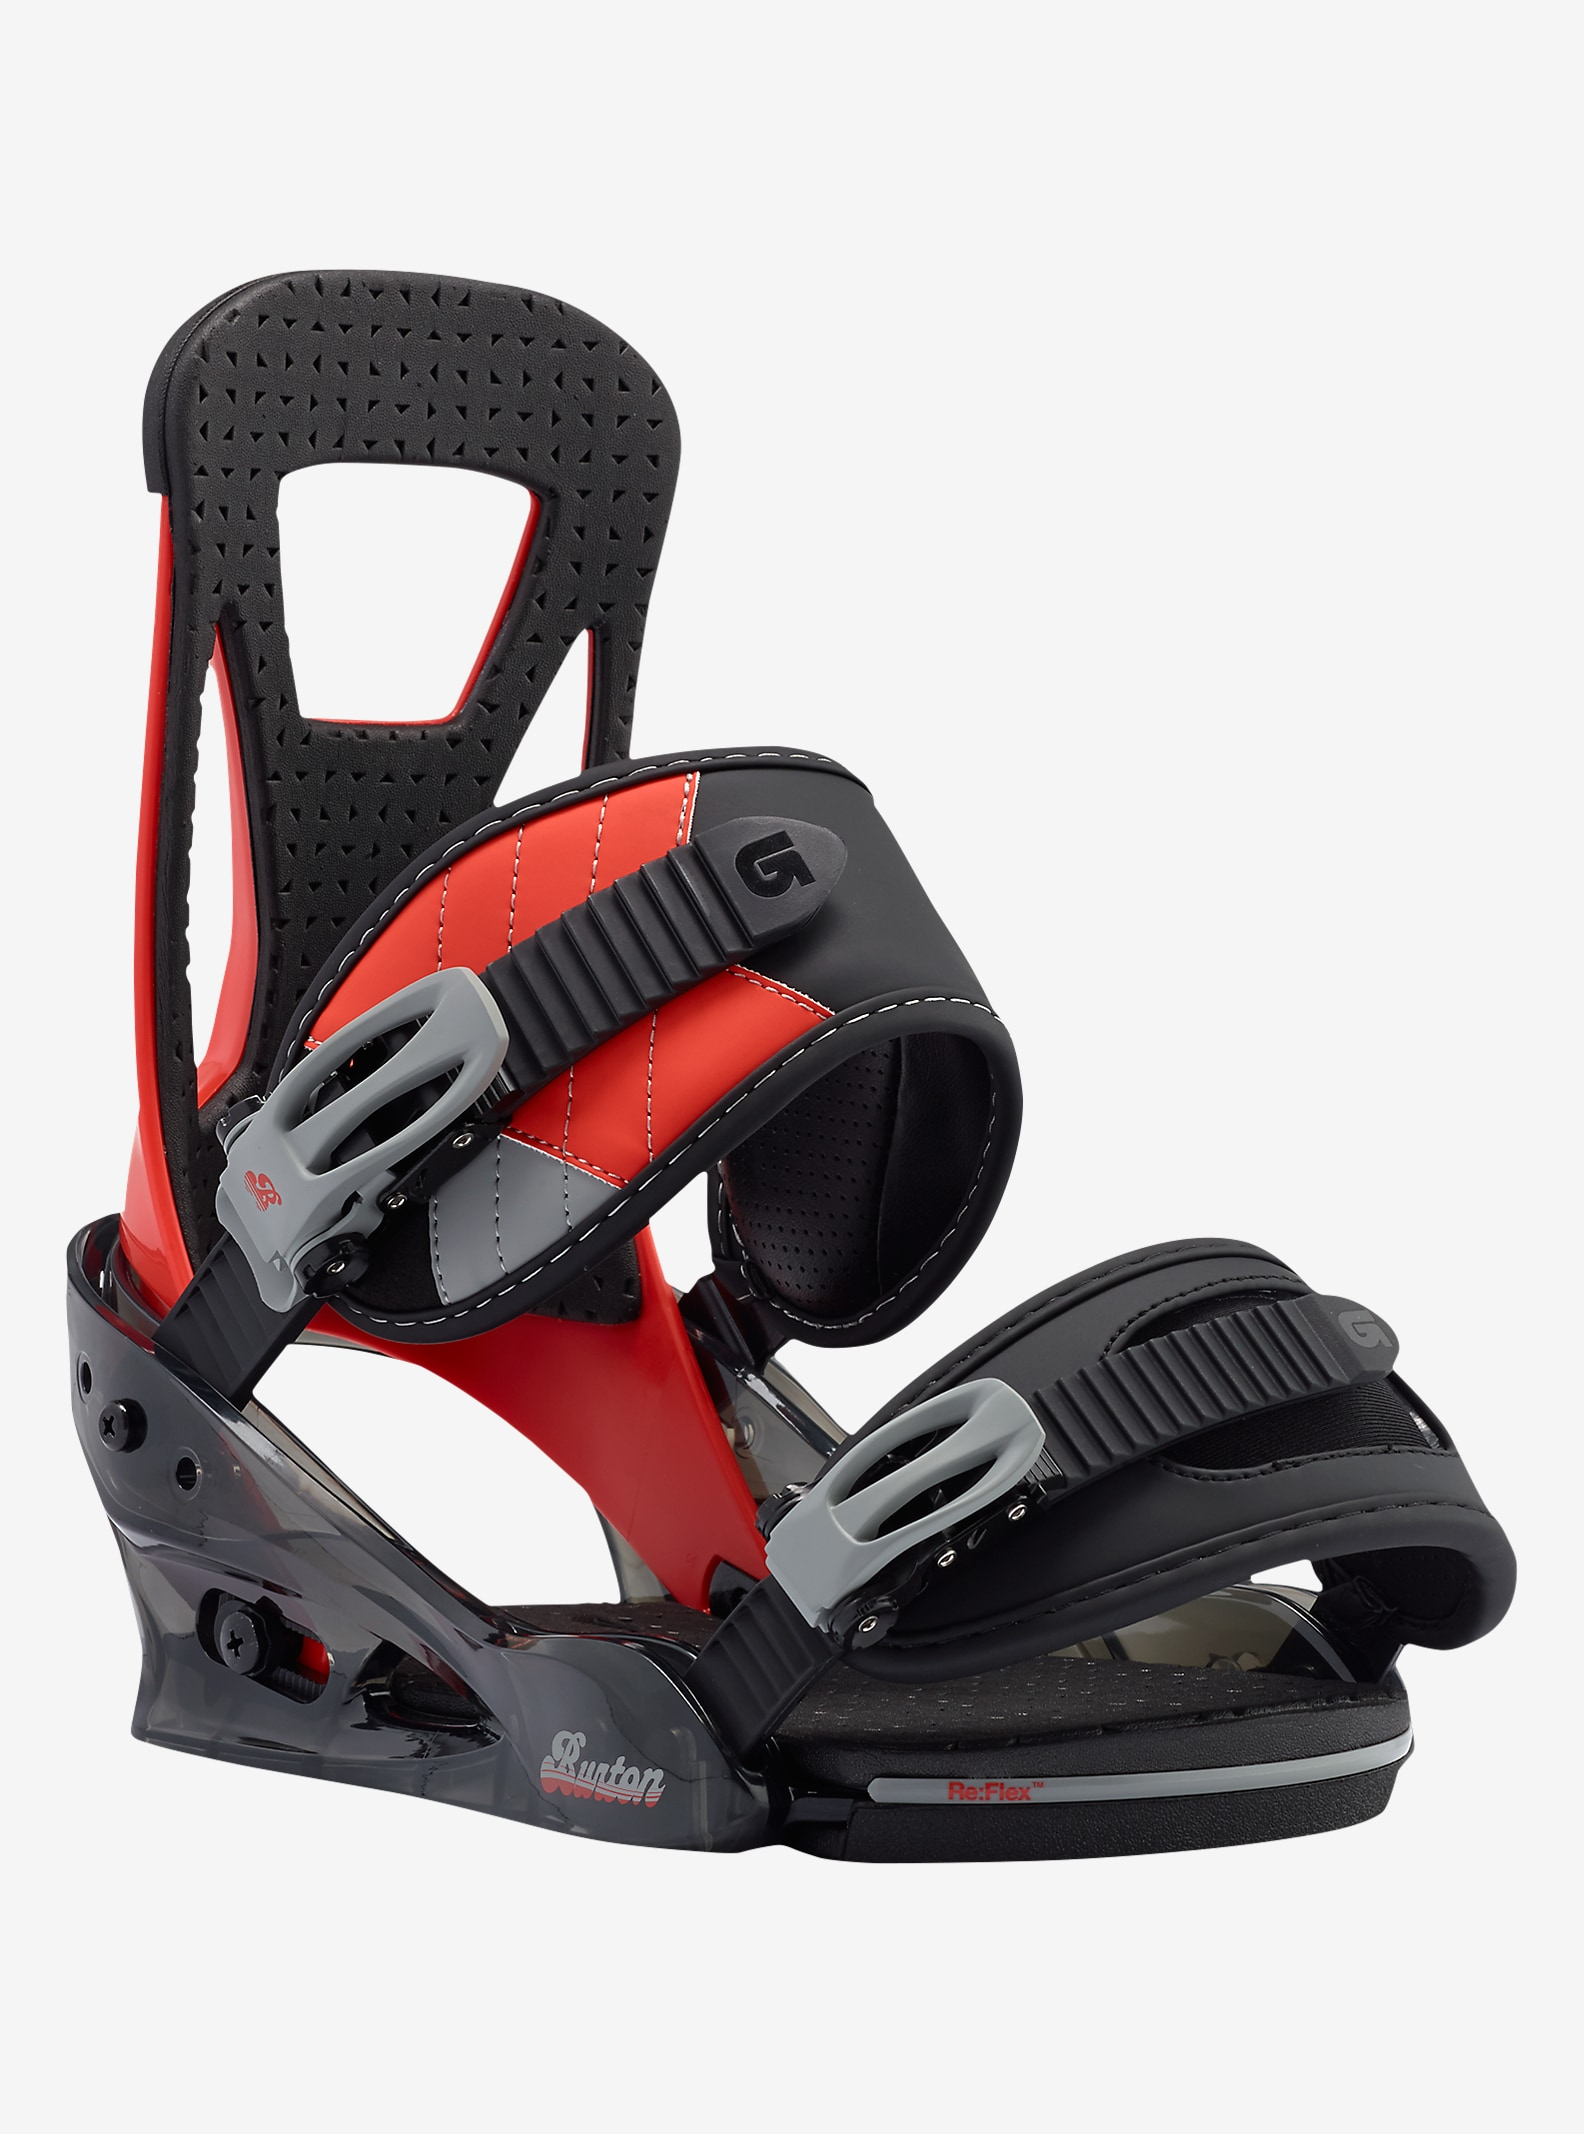 Burton Freestyle Snowboard Binding shown in Redrum